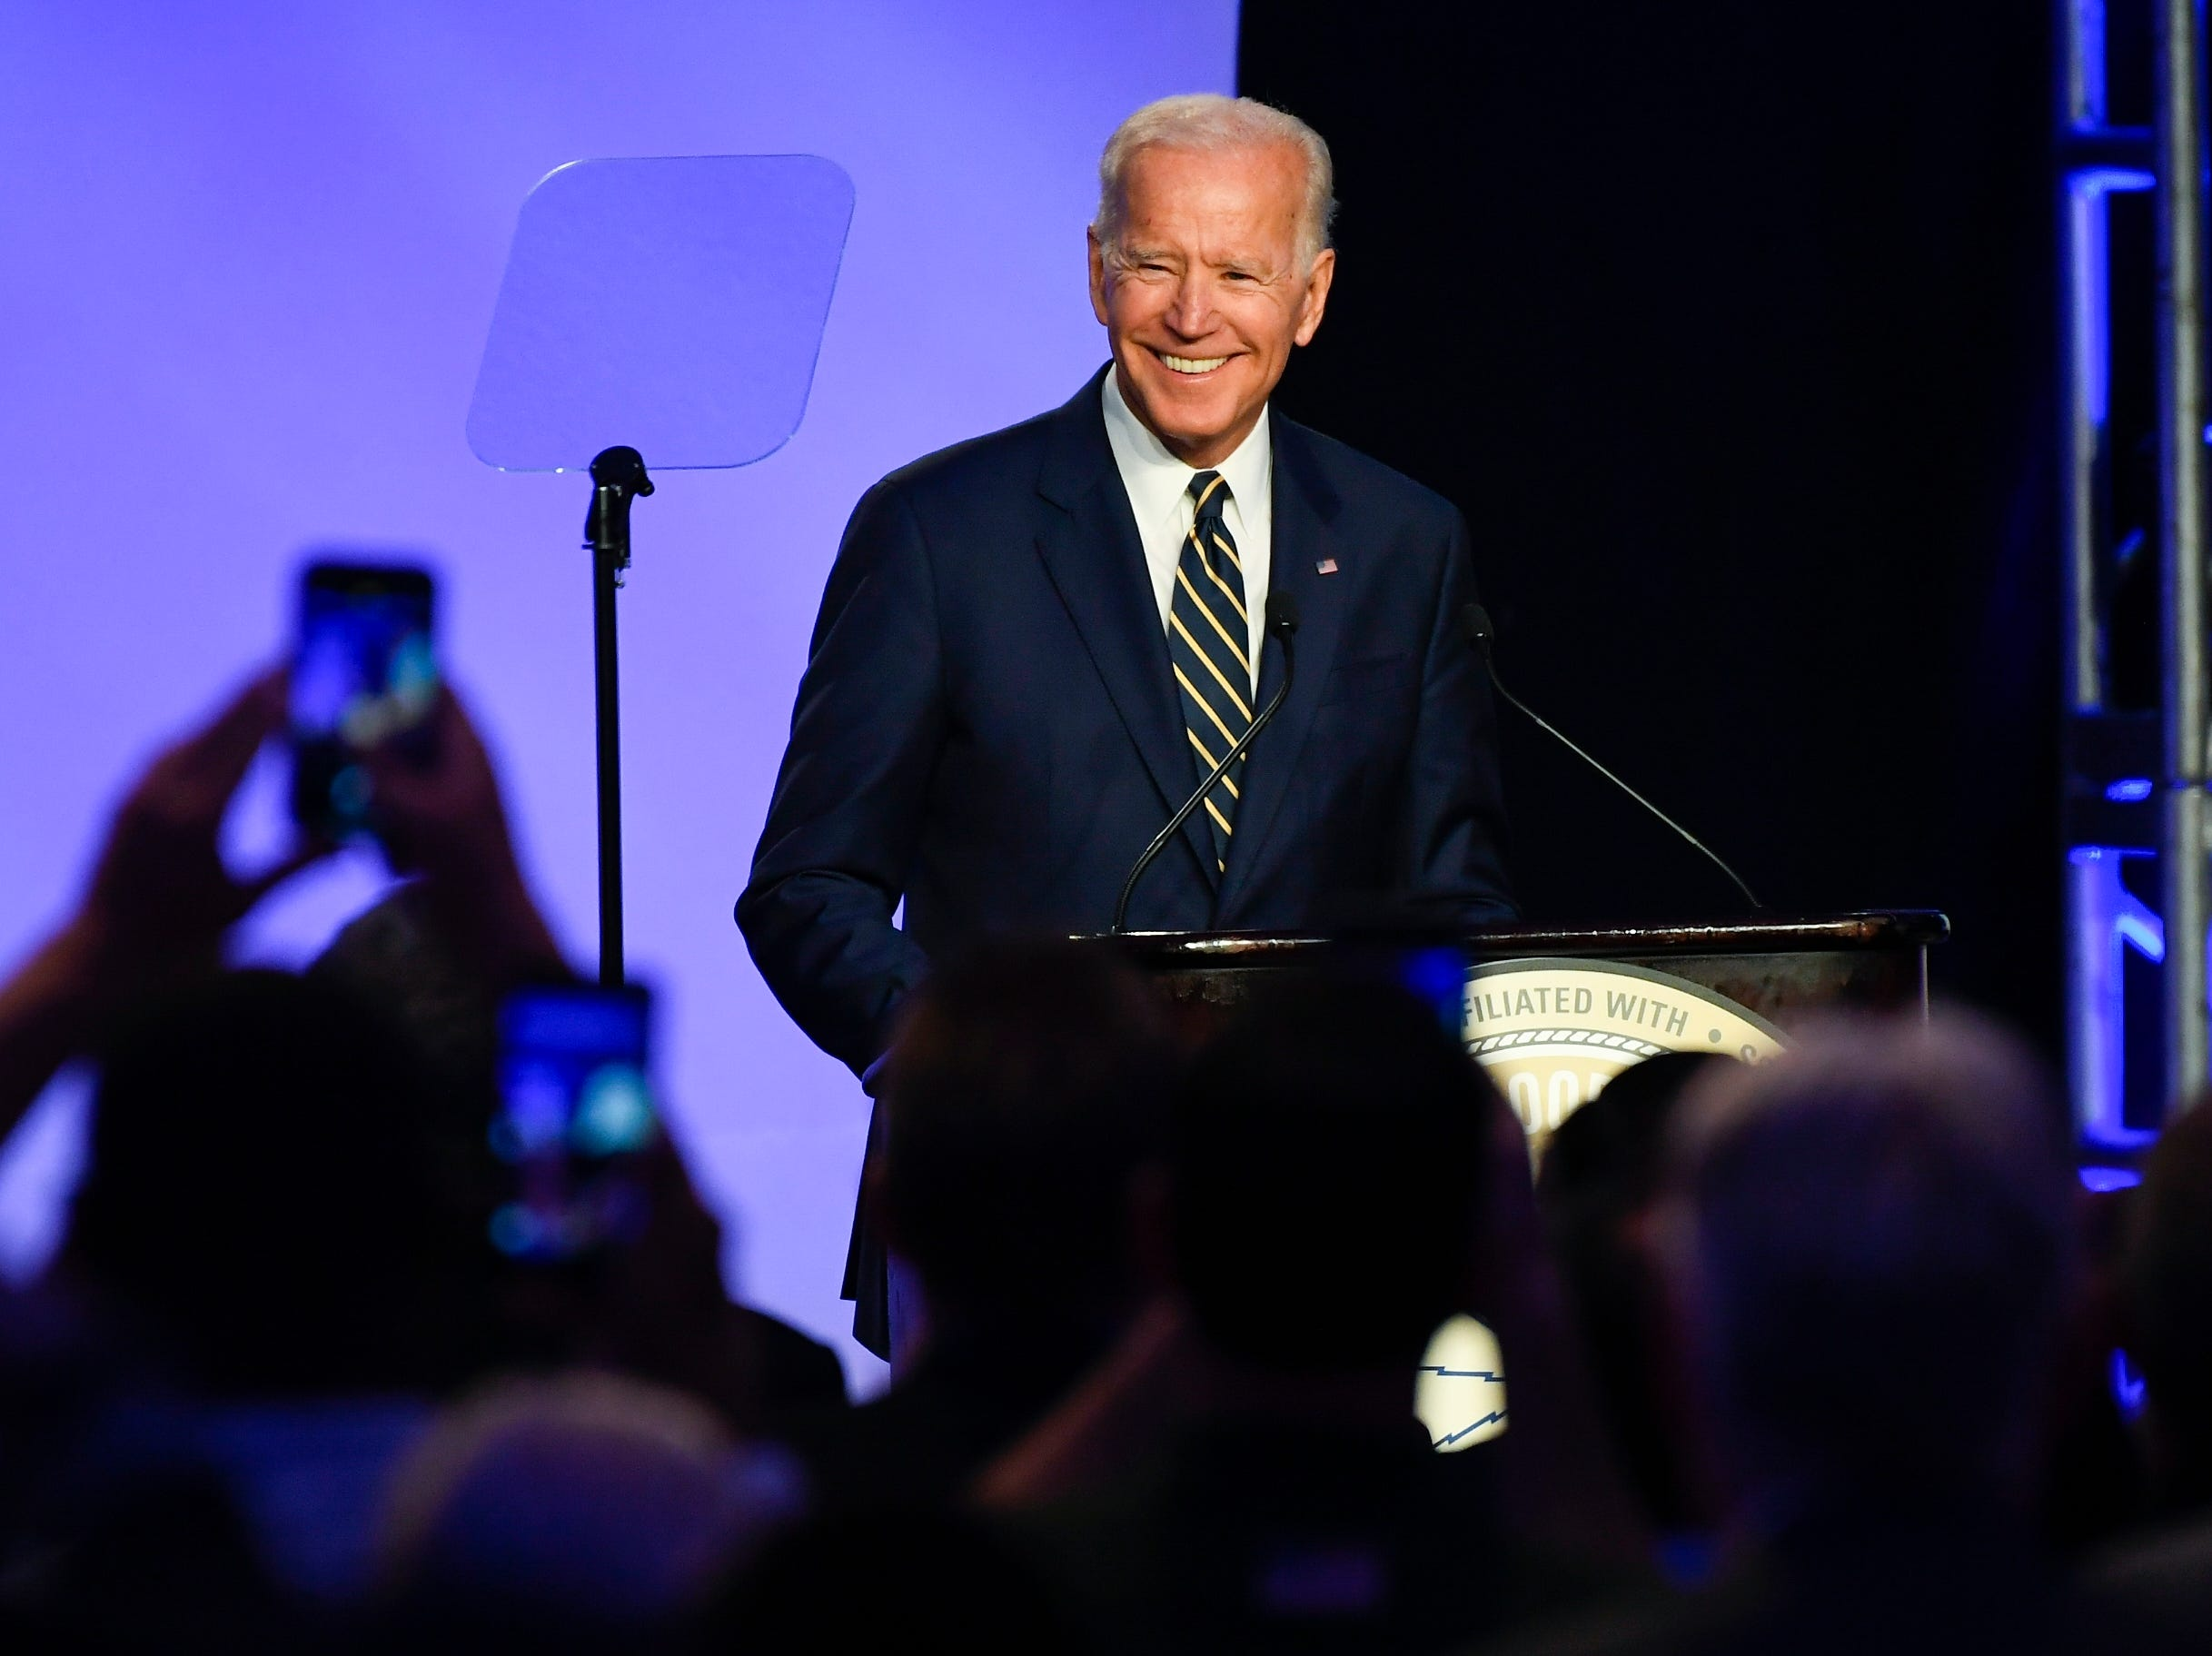 4/5/19 9:37:01 AM -- Washington, DC, U.S.A  -- Former Vice President Joe Biden delivers remarks at the International Brotherhood of Electrical Workers Construction and Maintenance Conference at the Washington Hilton in Washington D.C. --    Photo by Jack Gruber, USA TODAY Staff ORG XMIT:  JG 137932 Joe Biden 4/5/2019 [Via MerlinFTP Drop]